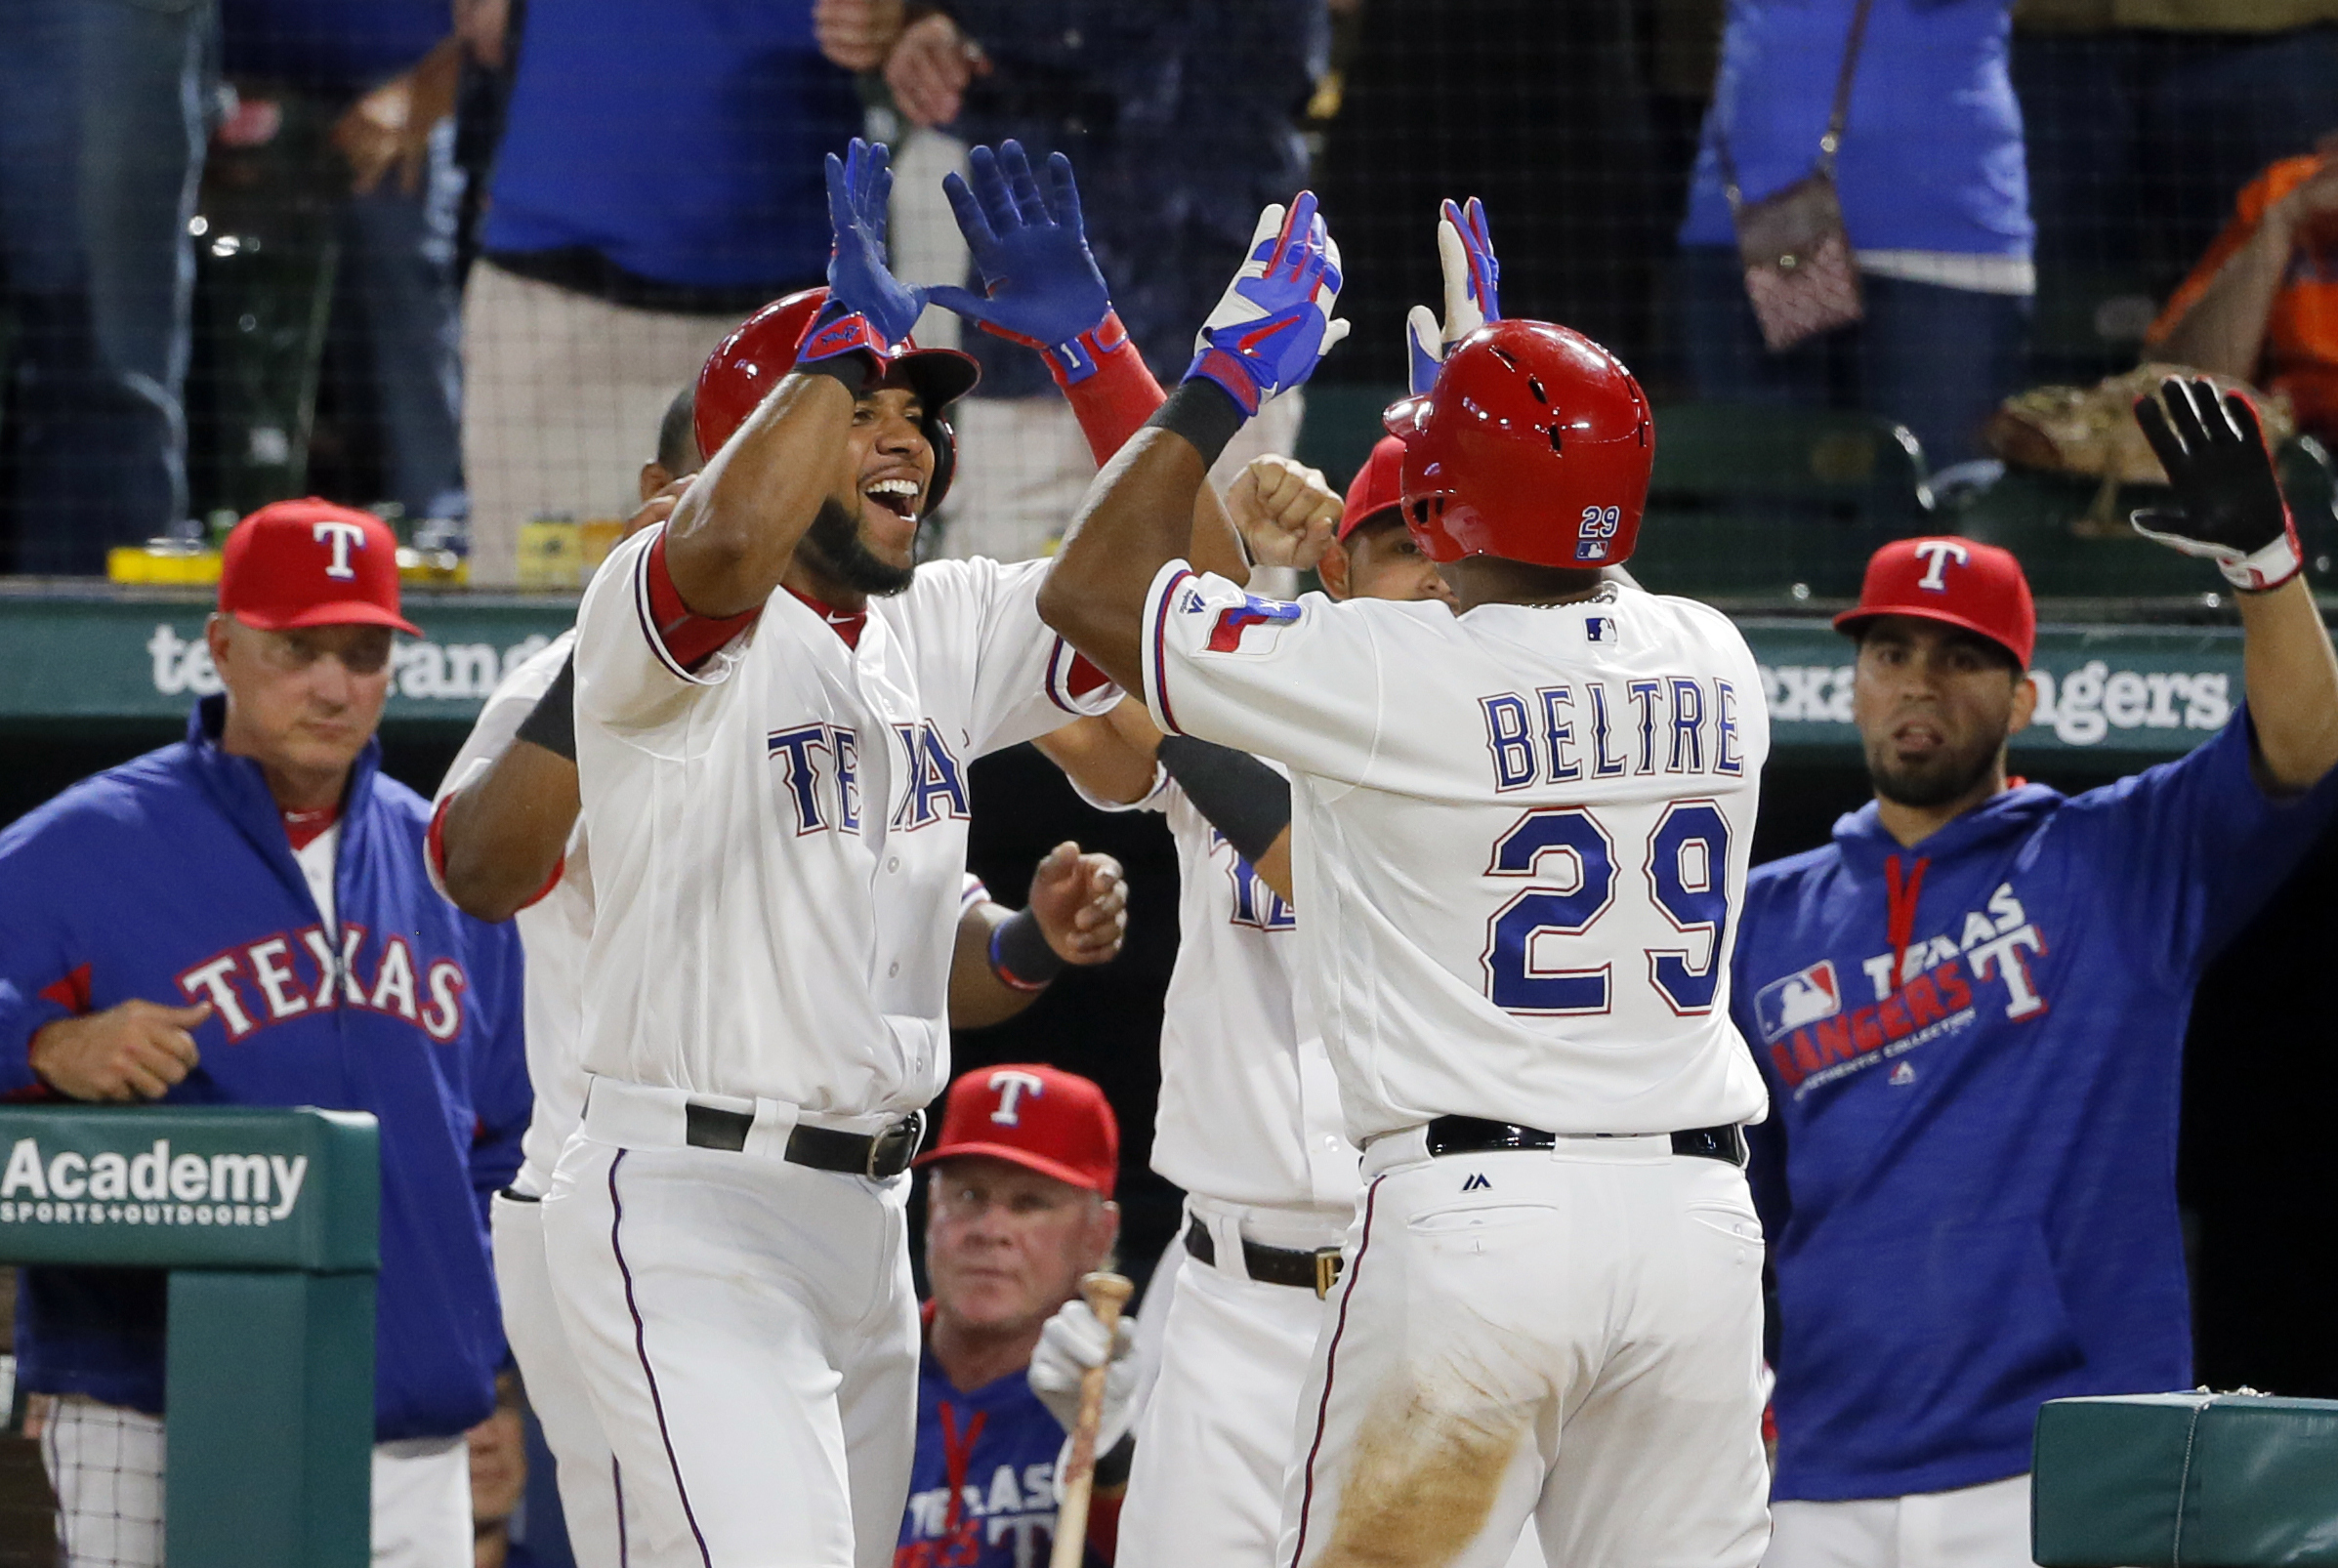 Texas Rangers' Elvis Andrus, left, congratulates Adrian Beltre (29) on his solo home run during the seventh inning of a baseball game against the Houston Astros on Thursday, April 21, 2016, in Arlington, Texas. The shot came off of Astros relief pitcher P